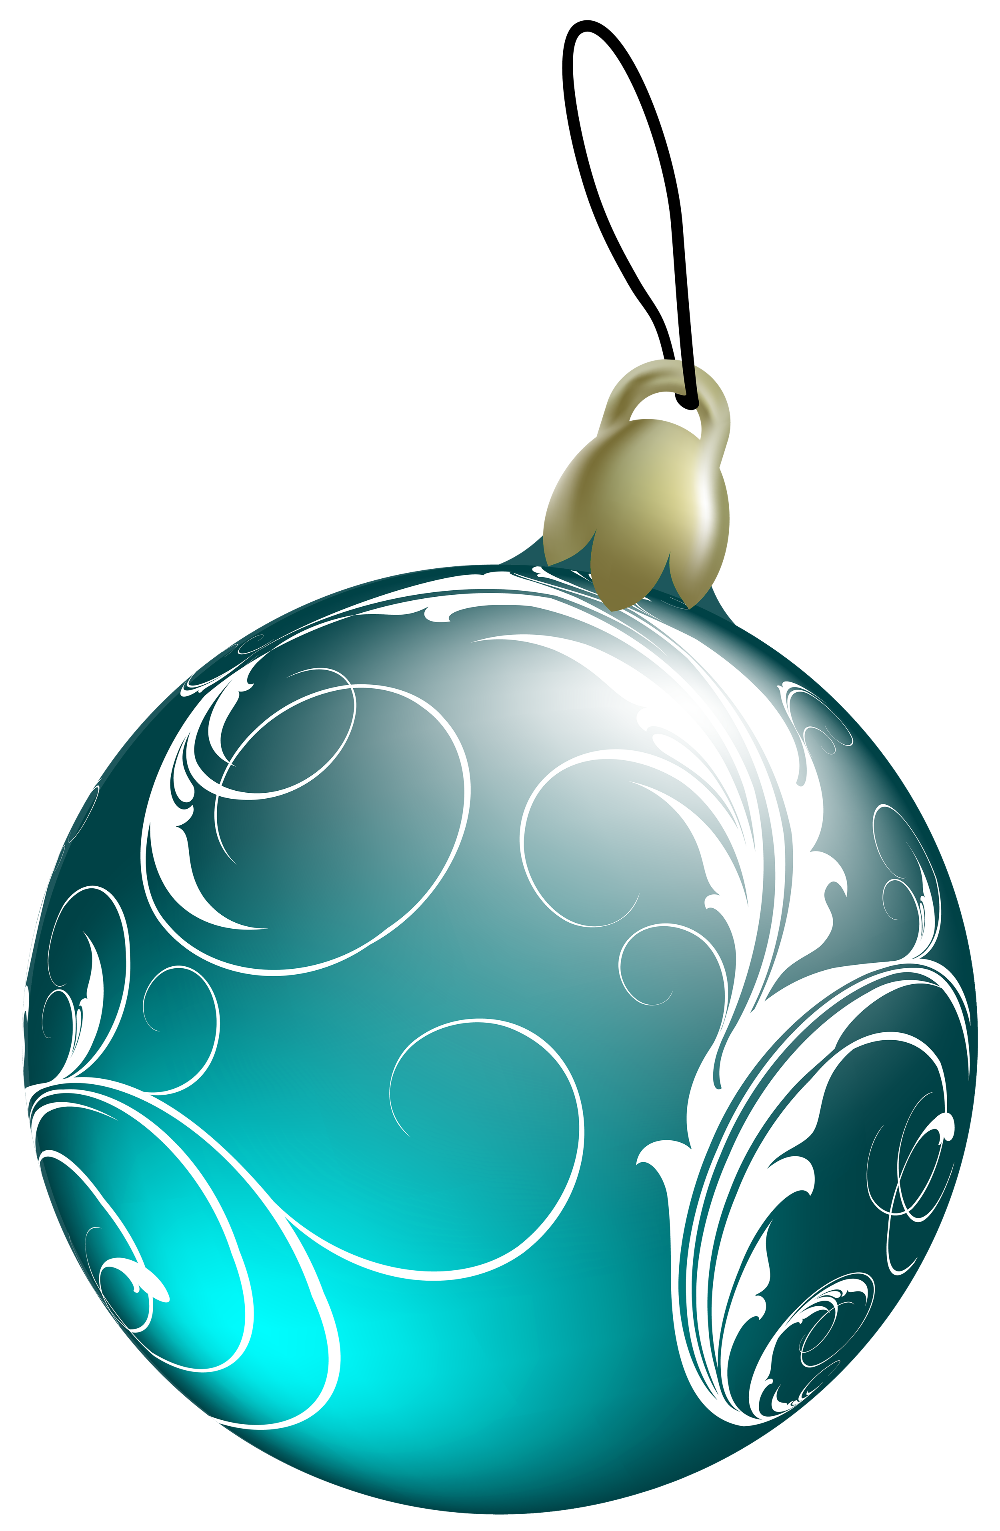 Download Free High Quality Christmas Balls Png Transparent Images Download Number 35235 Daily Updated Christmas Balls Image Blue Christmas Christmas Balls